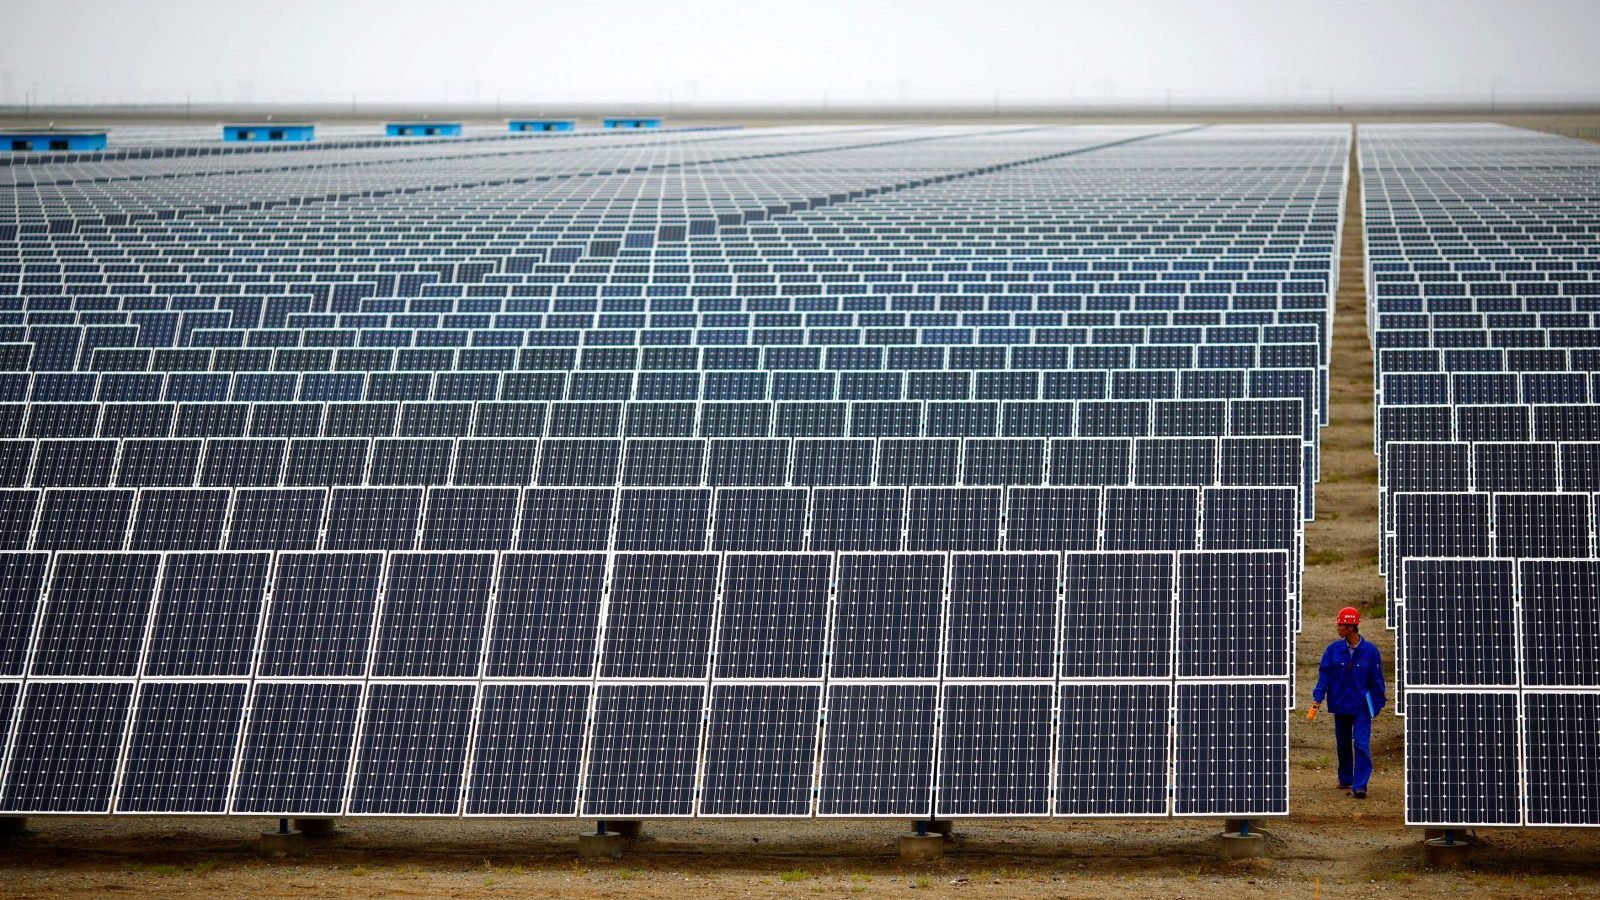 A worker inspects solar panels at a solar farm in Dunhuang, 950km (590 miles) northwest of Lanzhou, Gansu Province September 16, 2013. China is pumping investment into wind power, which is more cost-competitive than solar energy and partly able to compete with coal and gas. China is the world's biggest producer of CO2 emissions, but is also the world's leading generator of renewable electricity. Environmental issues will be under the spotlight during a working group of the Intergovernmental Panel on Climate Change, which will meet in Stockholm from September 23-26. Picture taken September 16, 2013. REUTERS/Carlos Barria (CHINA - Tags: ENERGY BUSINESS ENVIRONMENT TPX IMAGES OF THE DAY) - GM1E99M14O801